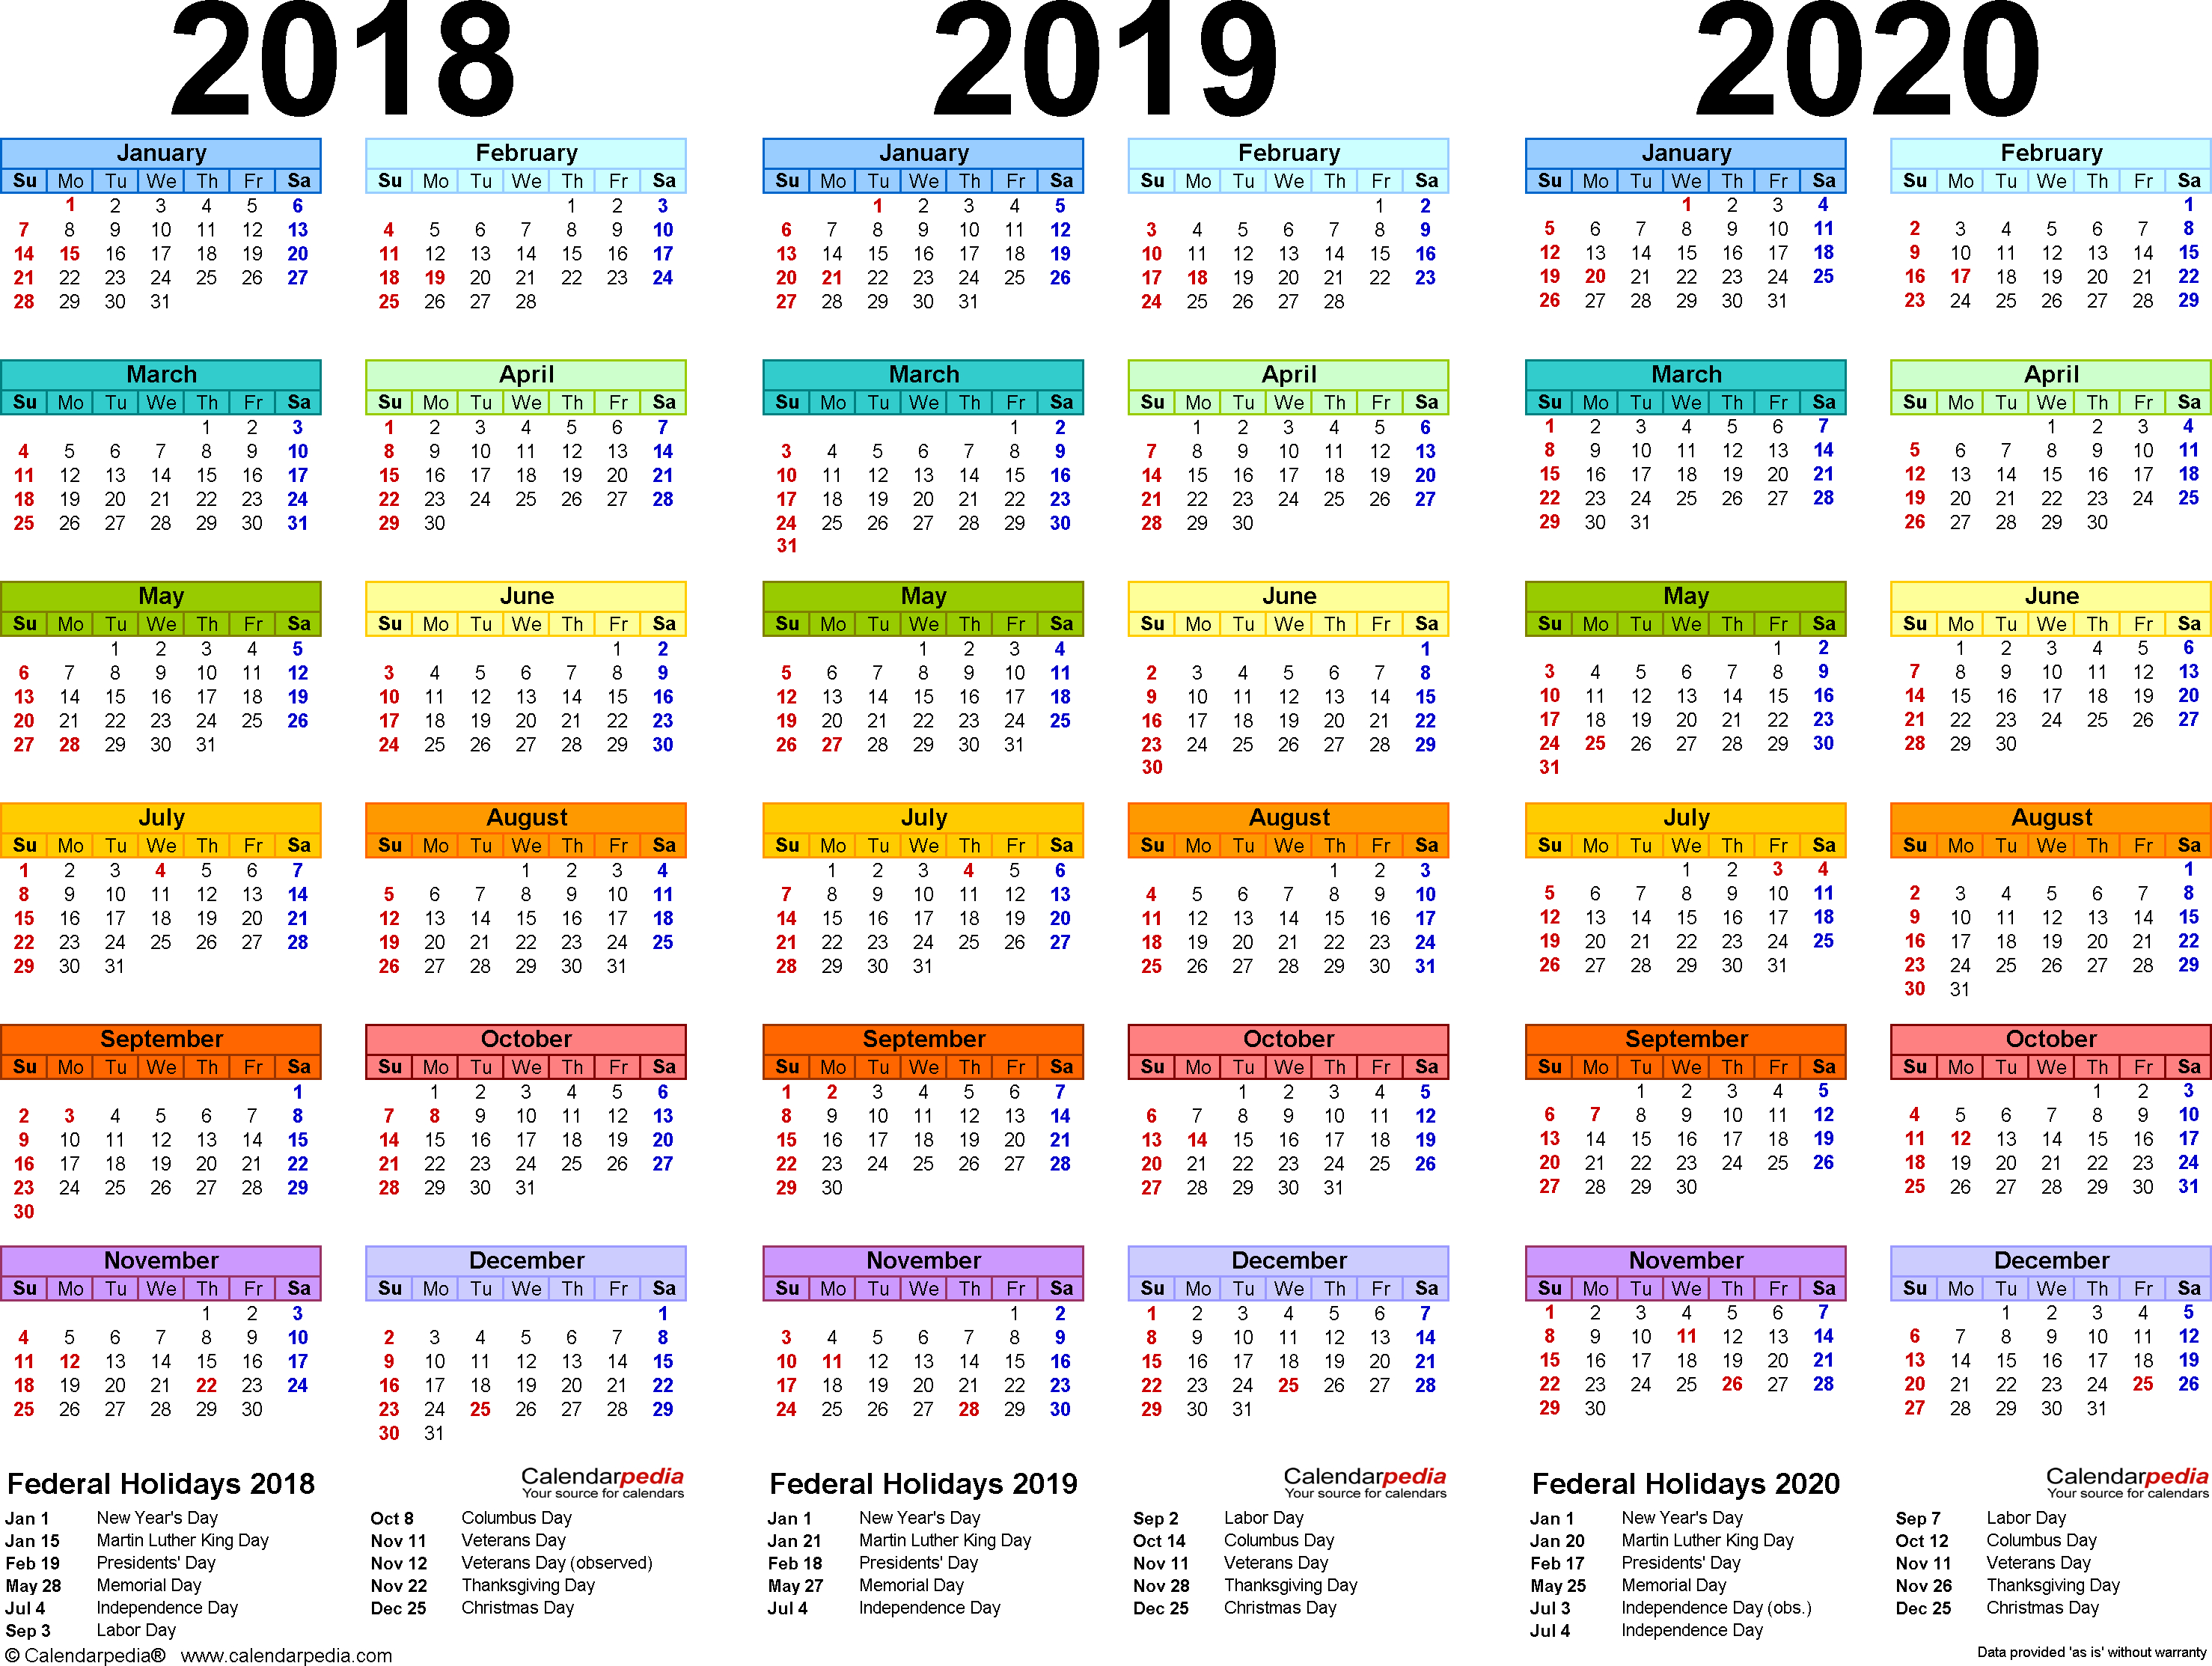 2019 Yearly Calendar - Free Download | Printables | Printable with regard to Year At A Glance Calendar 2020 Free Printable